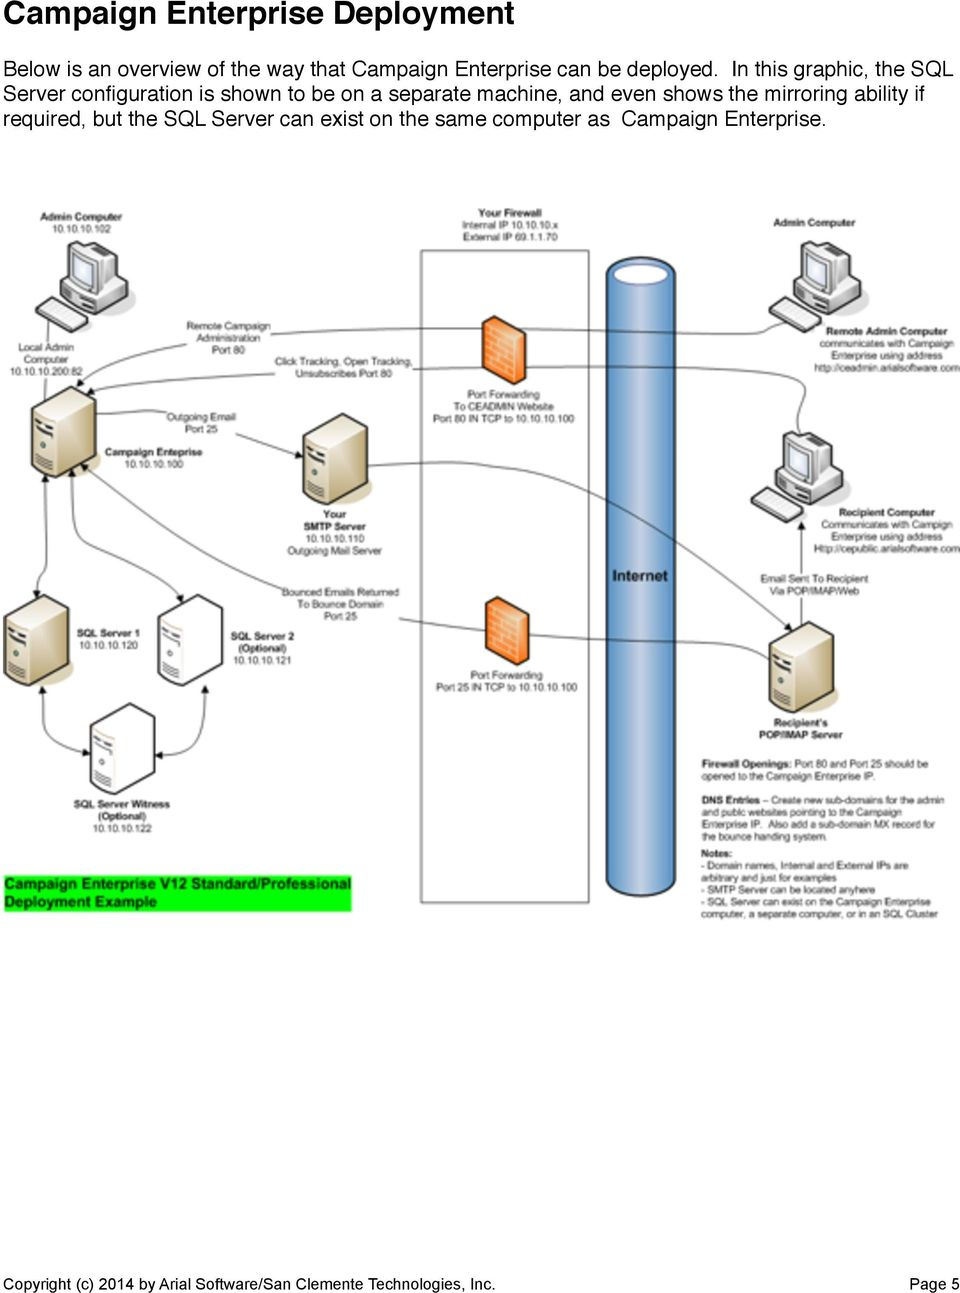 In this graphic, the SQL Server configuration is shown to be on a separate machine, and even